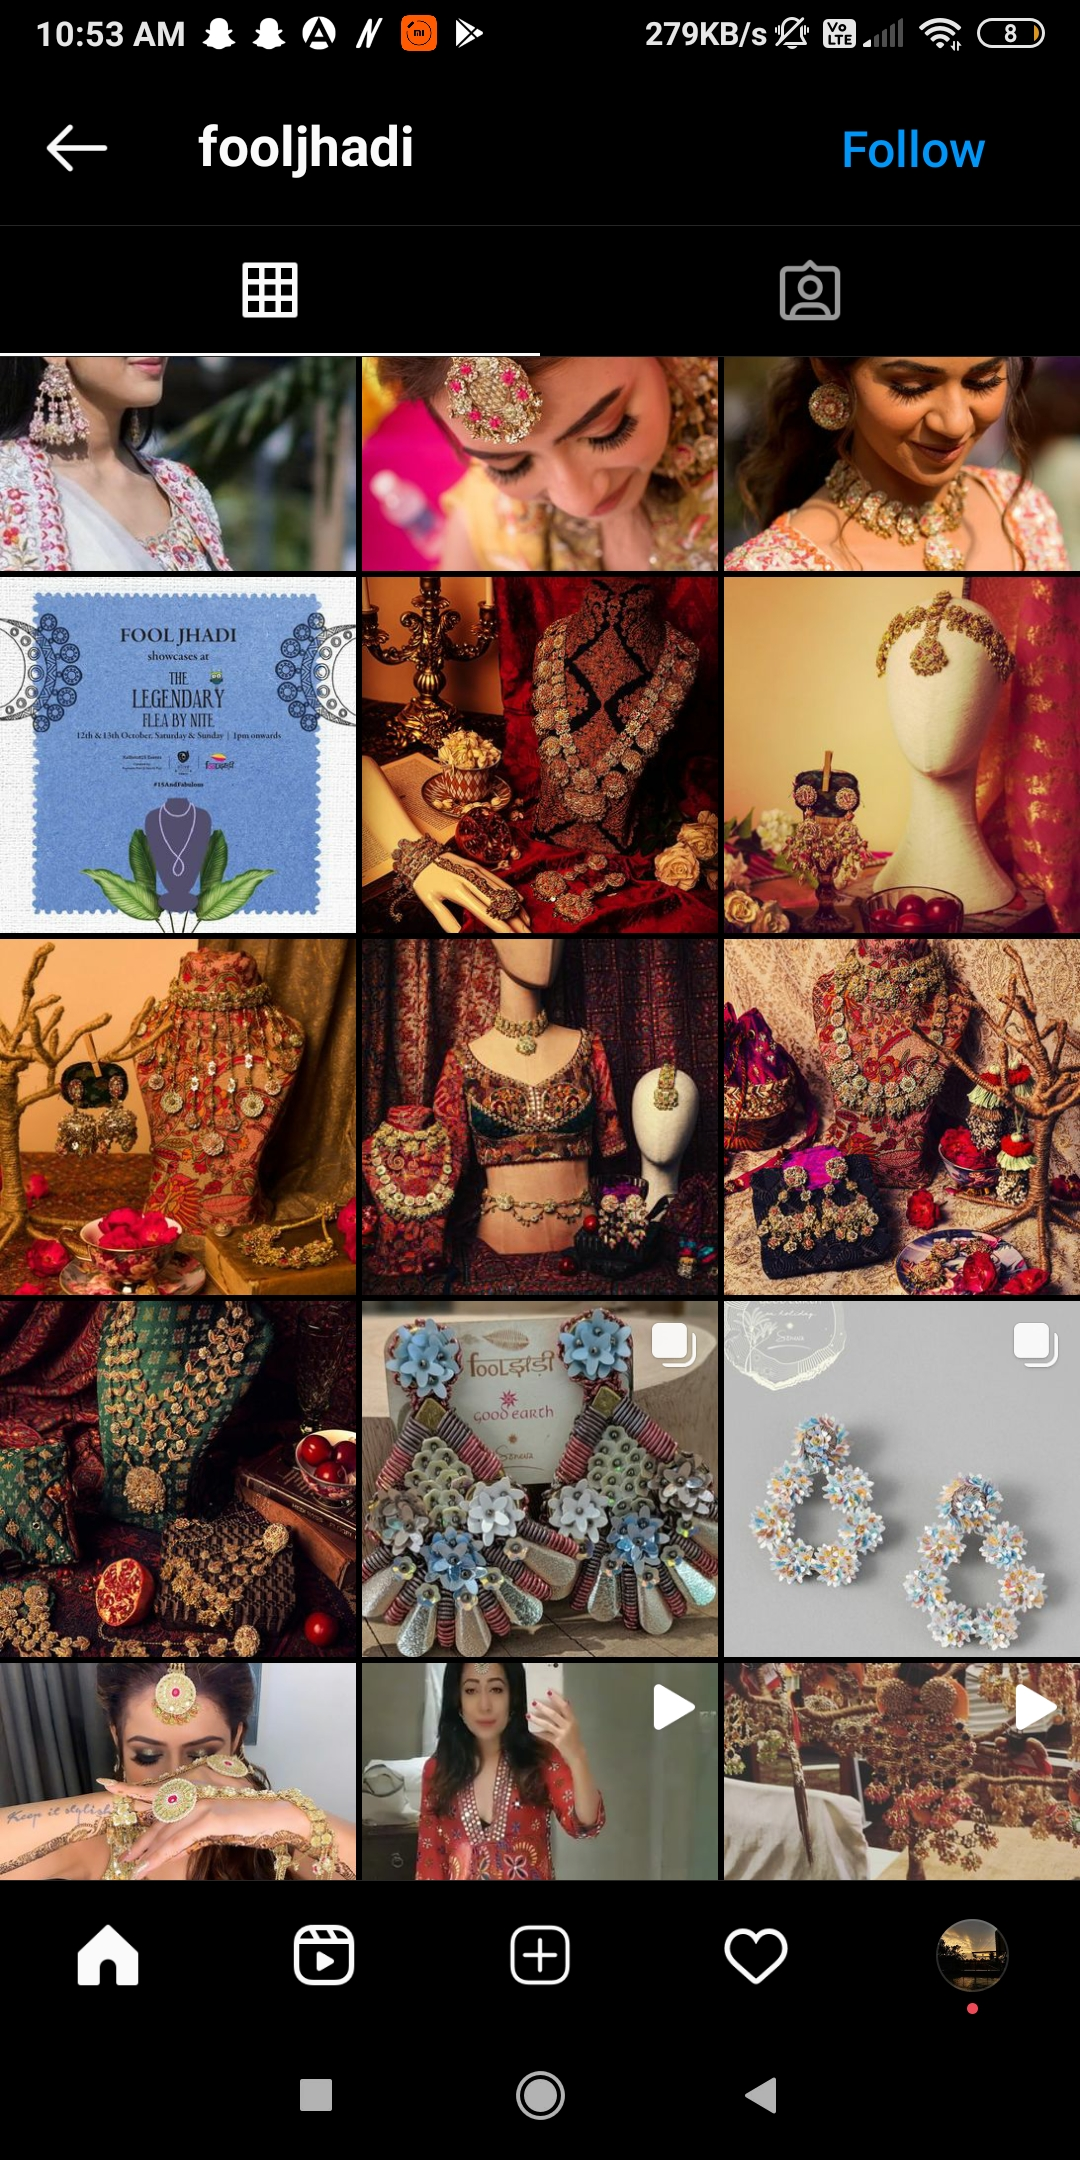 @fooljhadi  -  fooljhadi - 50+ SHOPPING Instagram ACCOUNTS for Clothes, Shoes, Jewellery 2021